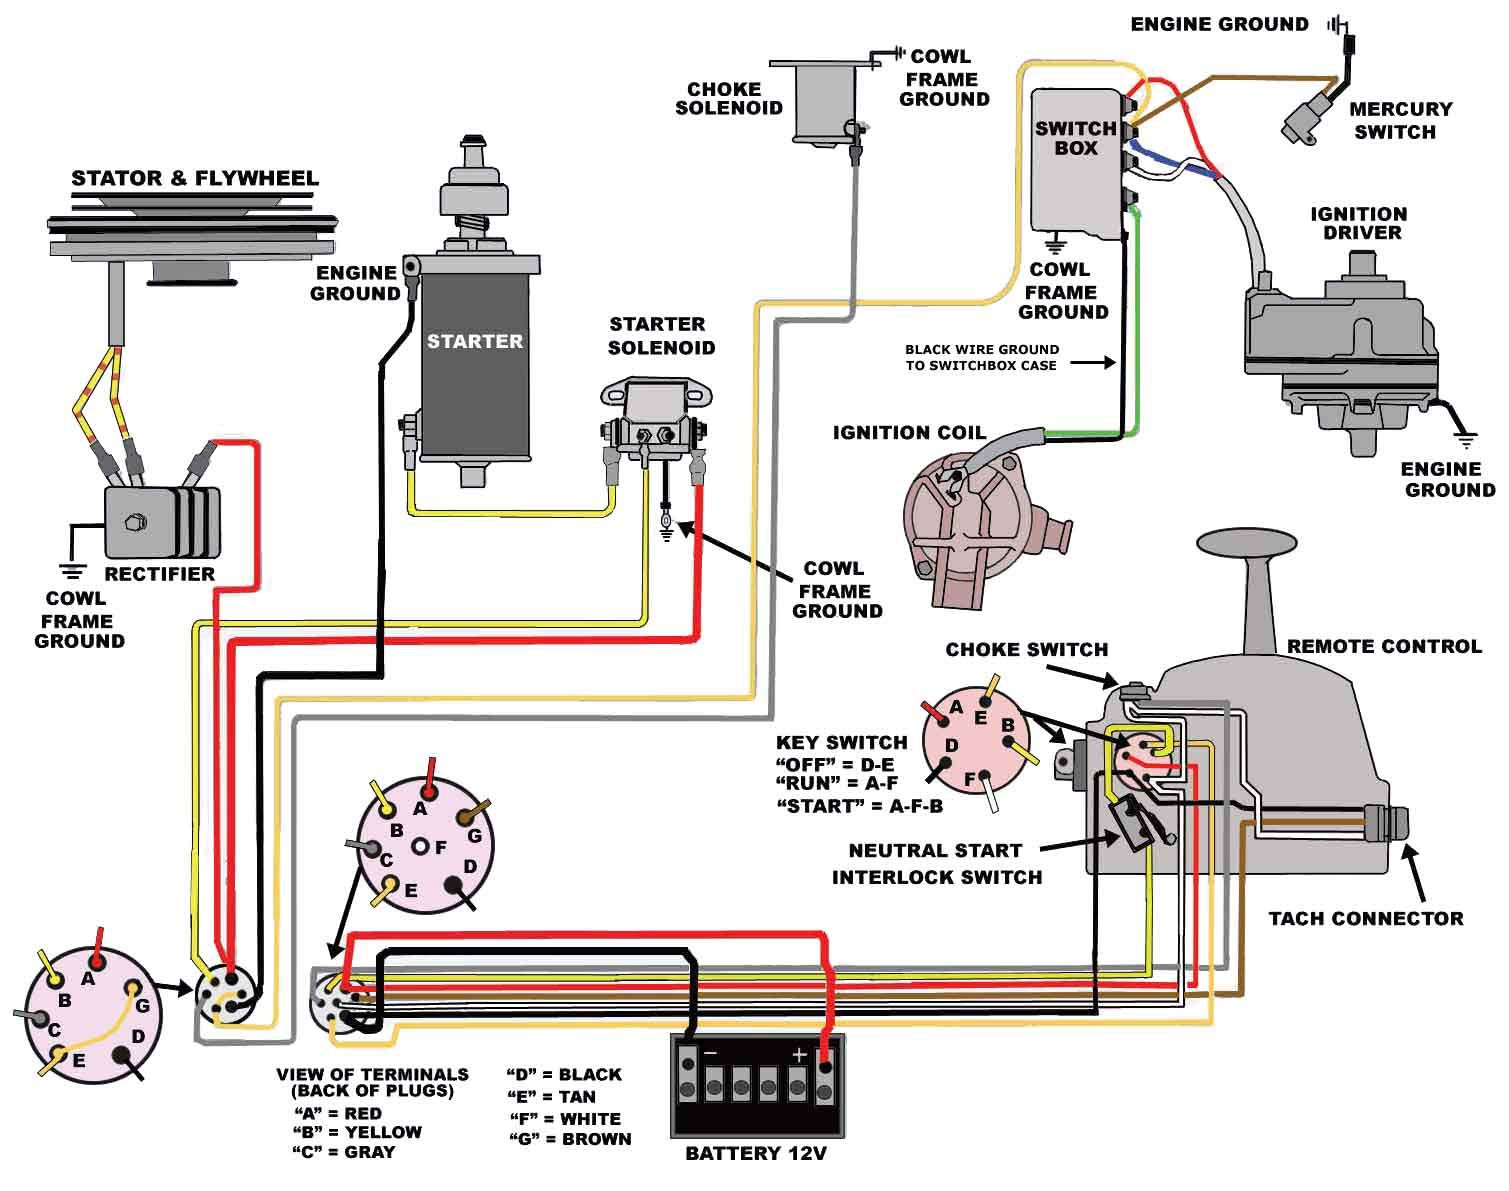 13cfb2d962bcd0c03103625817b7d51d mercury outboard wiring diagram diagram pinterest mercury mercury ignition switch wiring diagram at panicattacktreatment.co